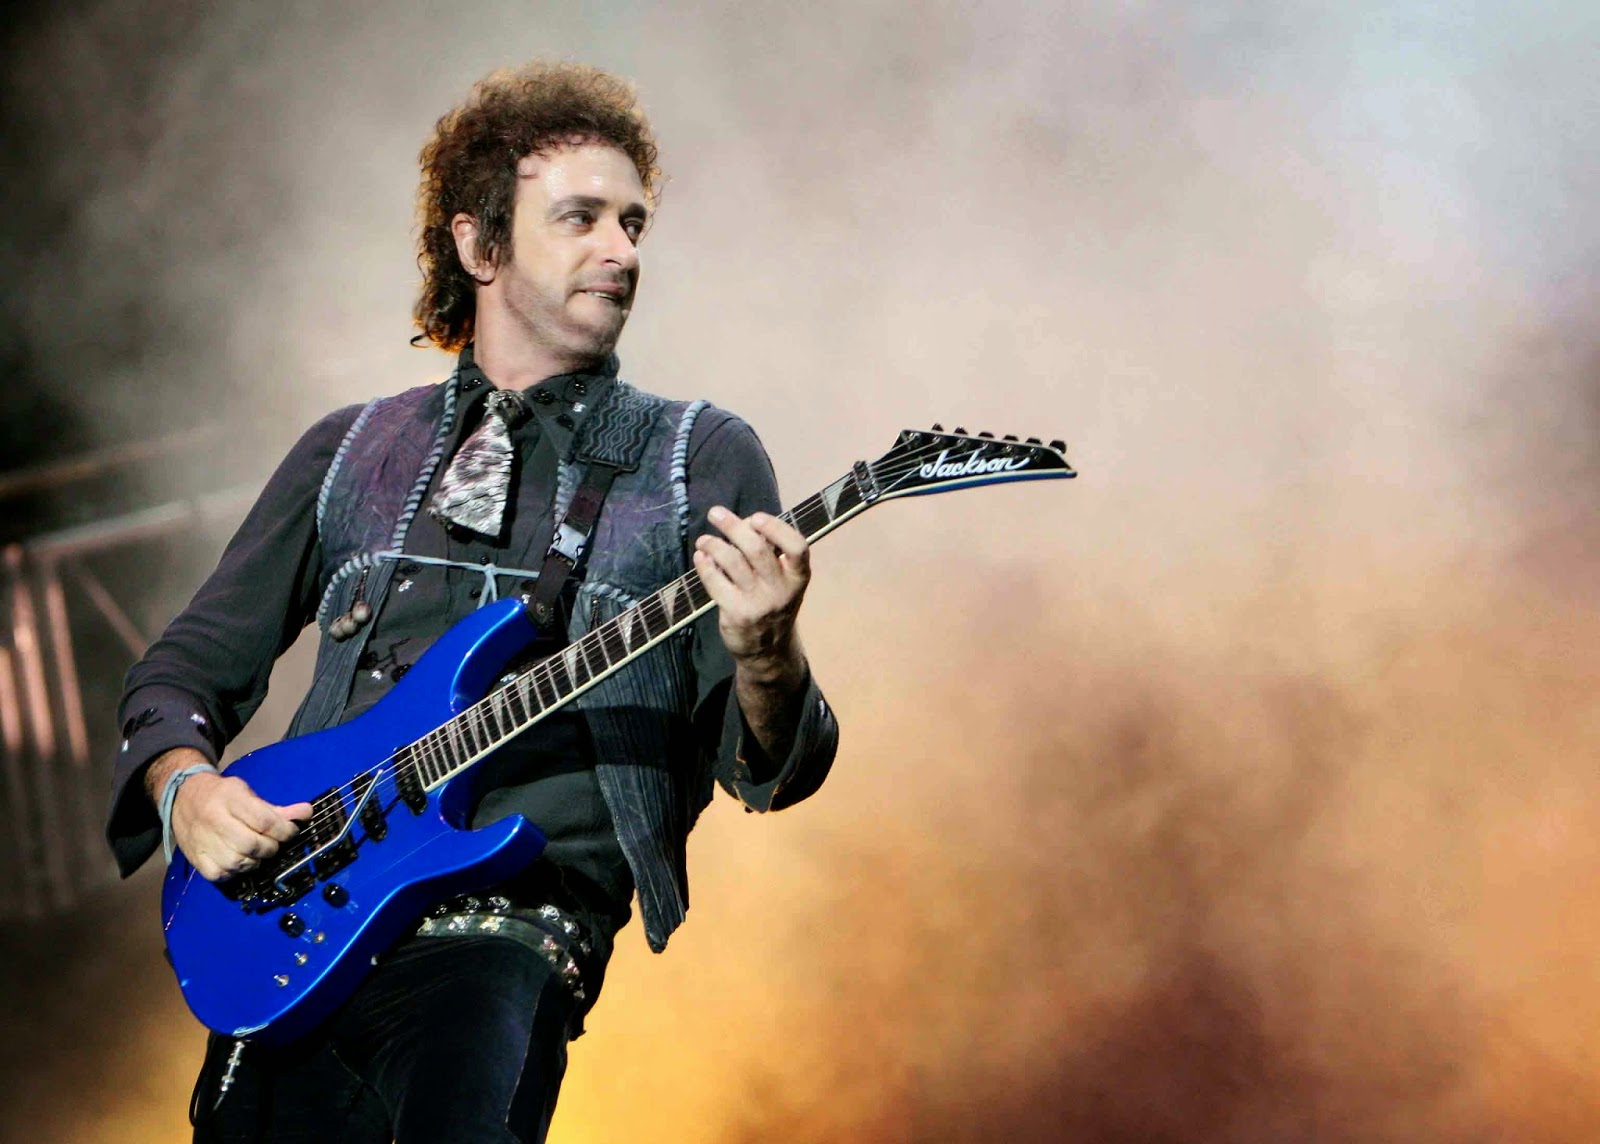 Wallpapers de Gustavo Cerati